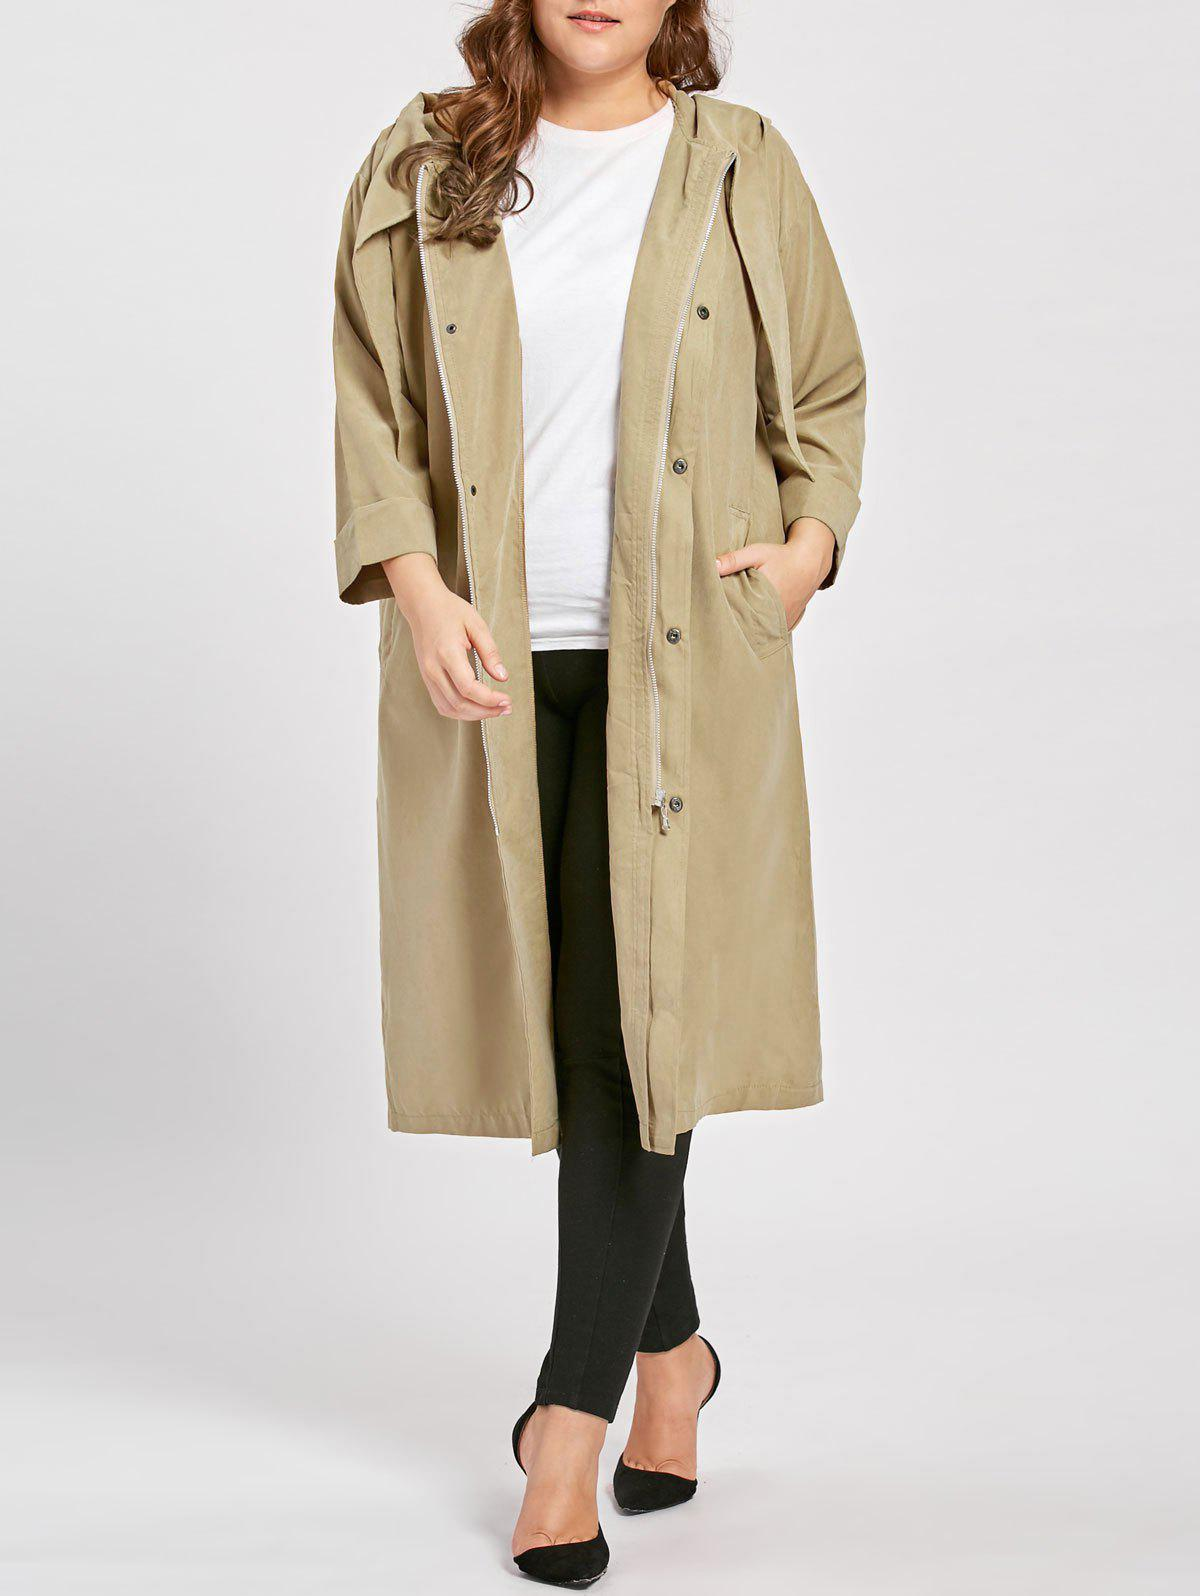 Plus Size Faux Sueded Long Zip Up Hooded CoatWOMEN<br><br>Size: 5XL; Color: APRICOT; Clothes Type: Trench; Material: Polyester; Type: Wide-waisted; Shirt Length: Long; Sleeve Length: Full; Collar: Hooded; Closure Type: Zipper; Pattern Type: Solid; Embellishment: Bowknot,Button; Style: Casual; Season: Fall,Winter; Weight: 0.4100kg; Package Contents: 1 x Coat;